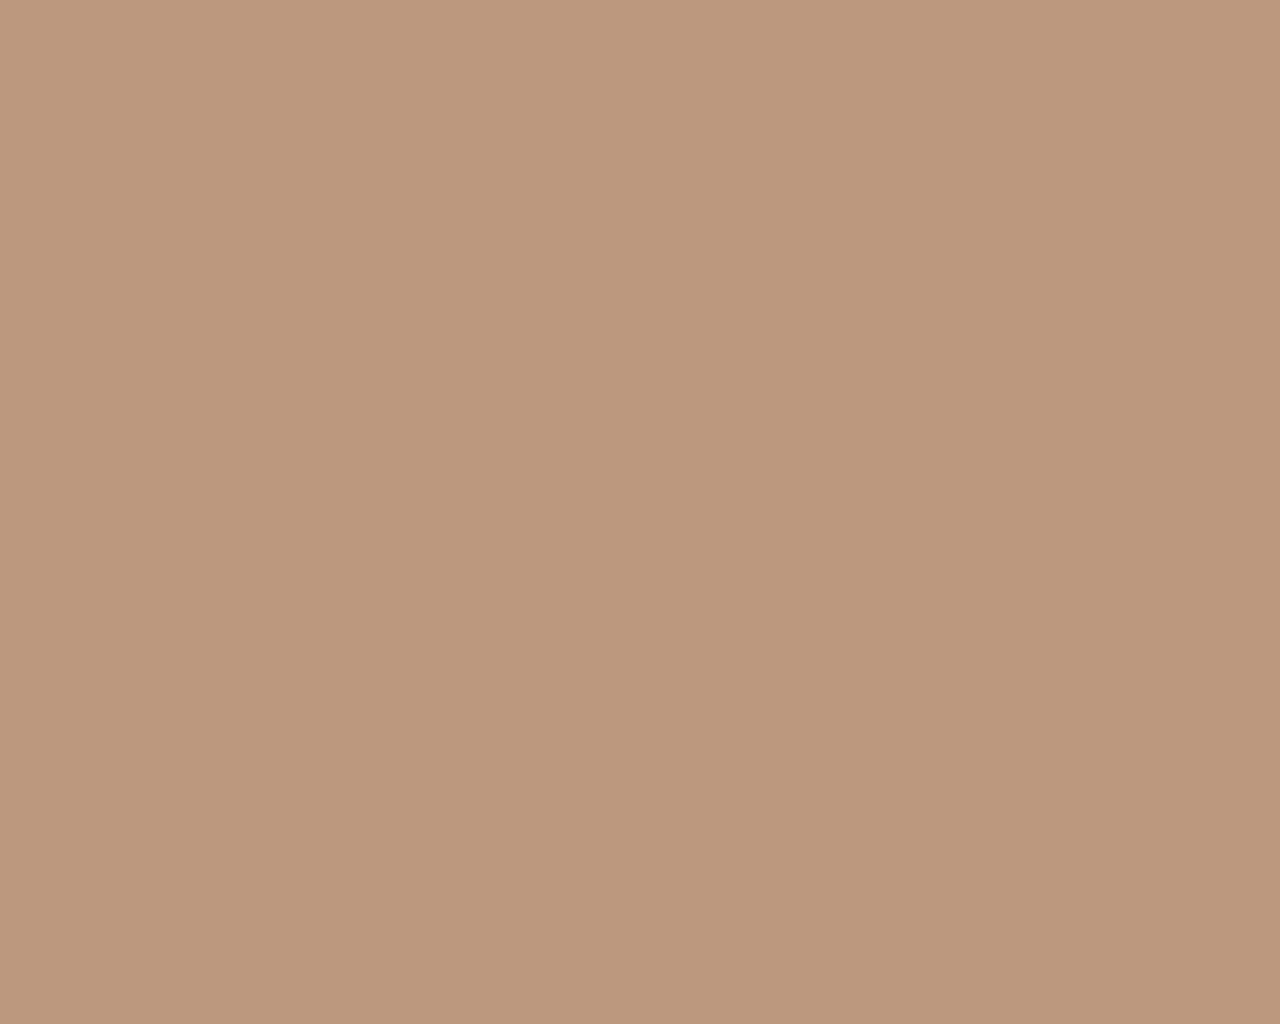 1280x1024 Pale Taupe Solid Color Background